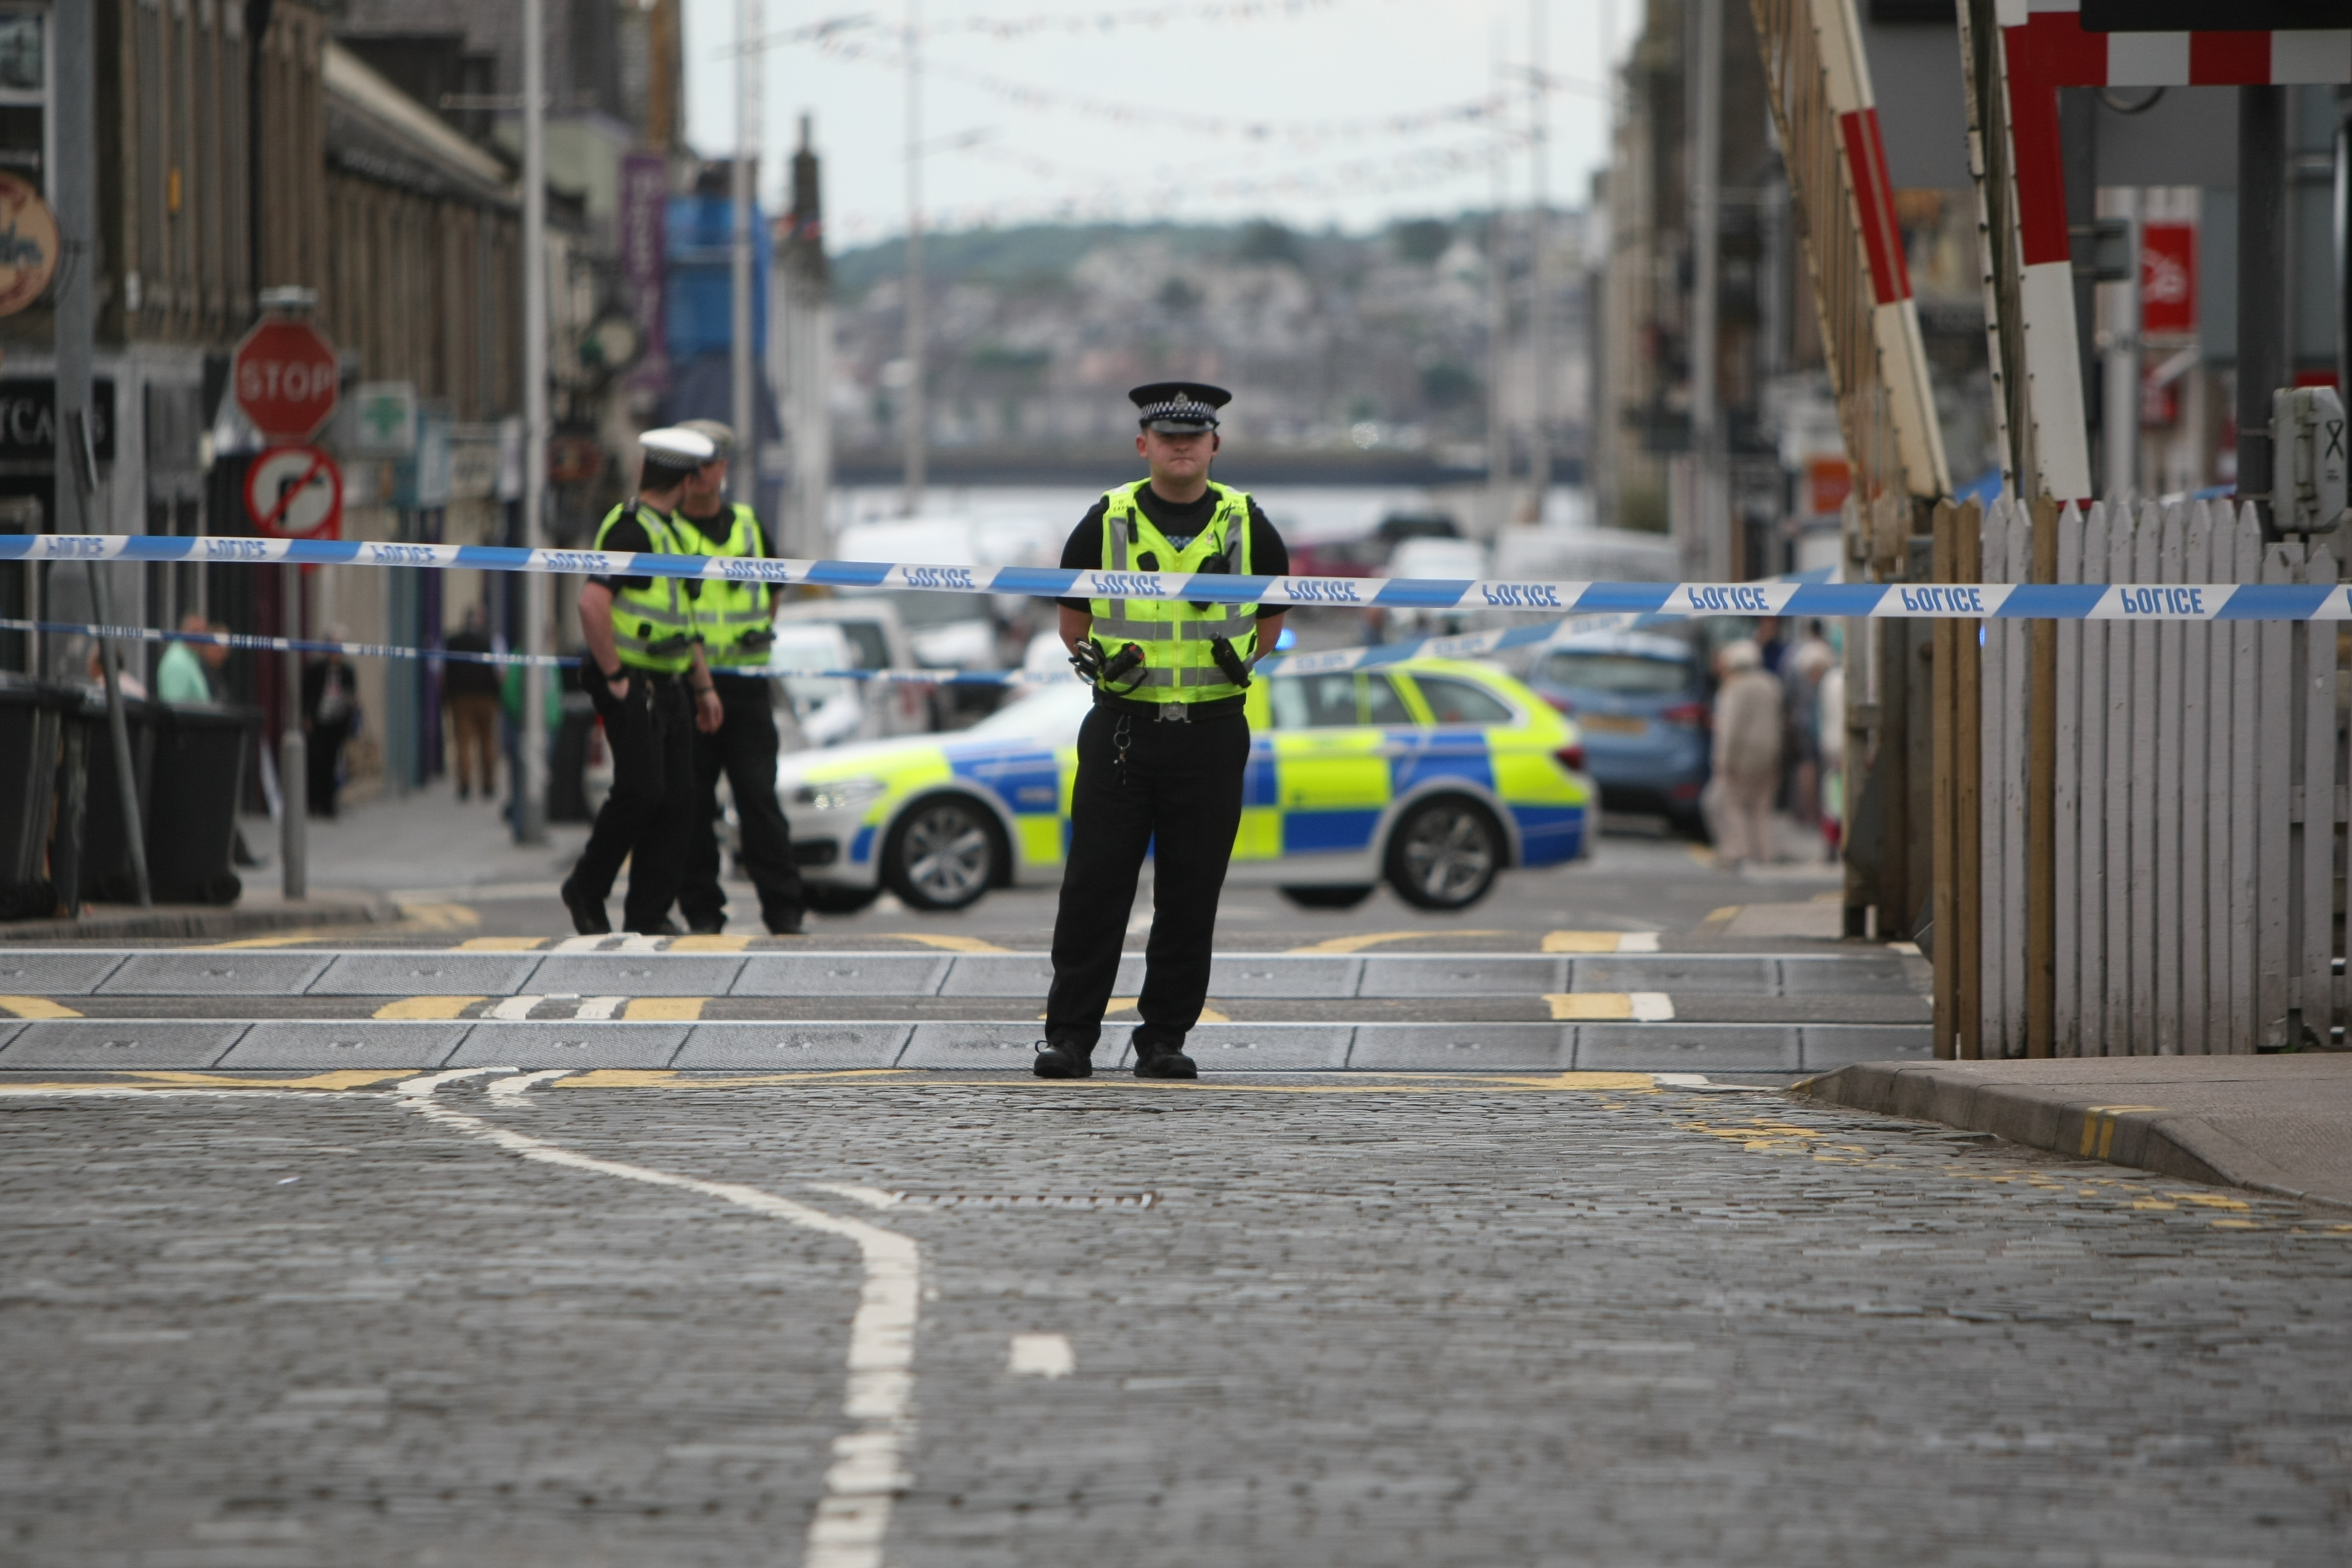 Police at the rail station at Broughty Ferry after a person was killed by a train.